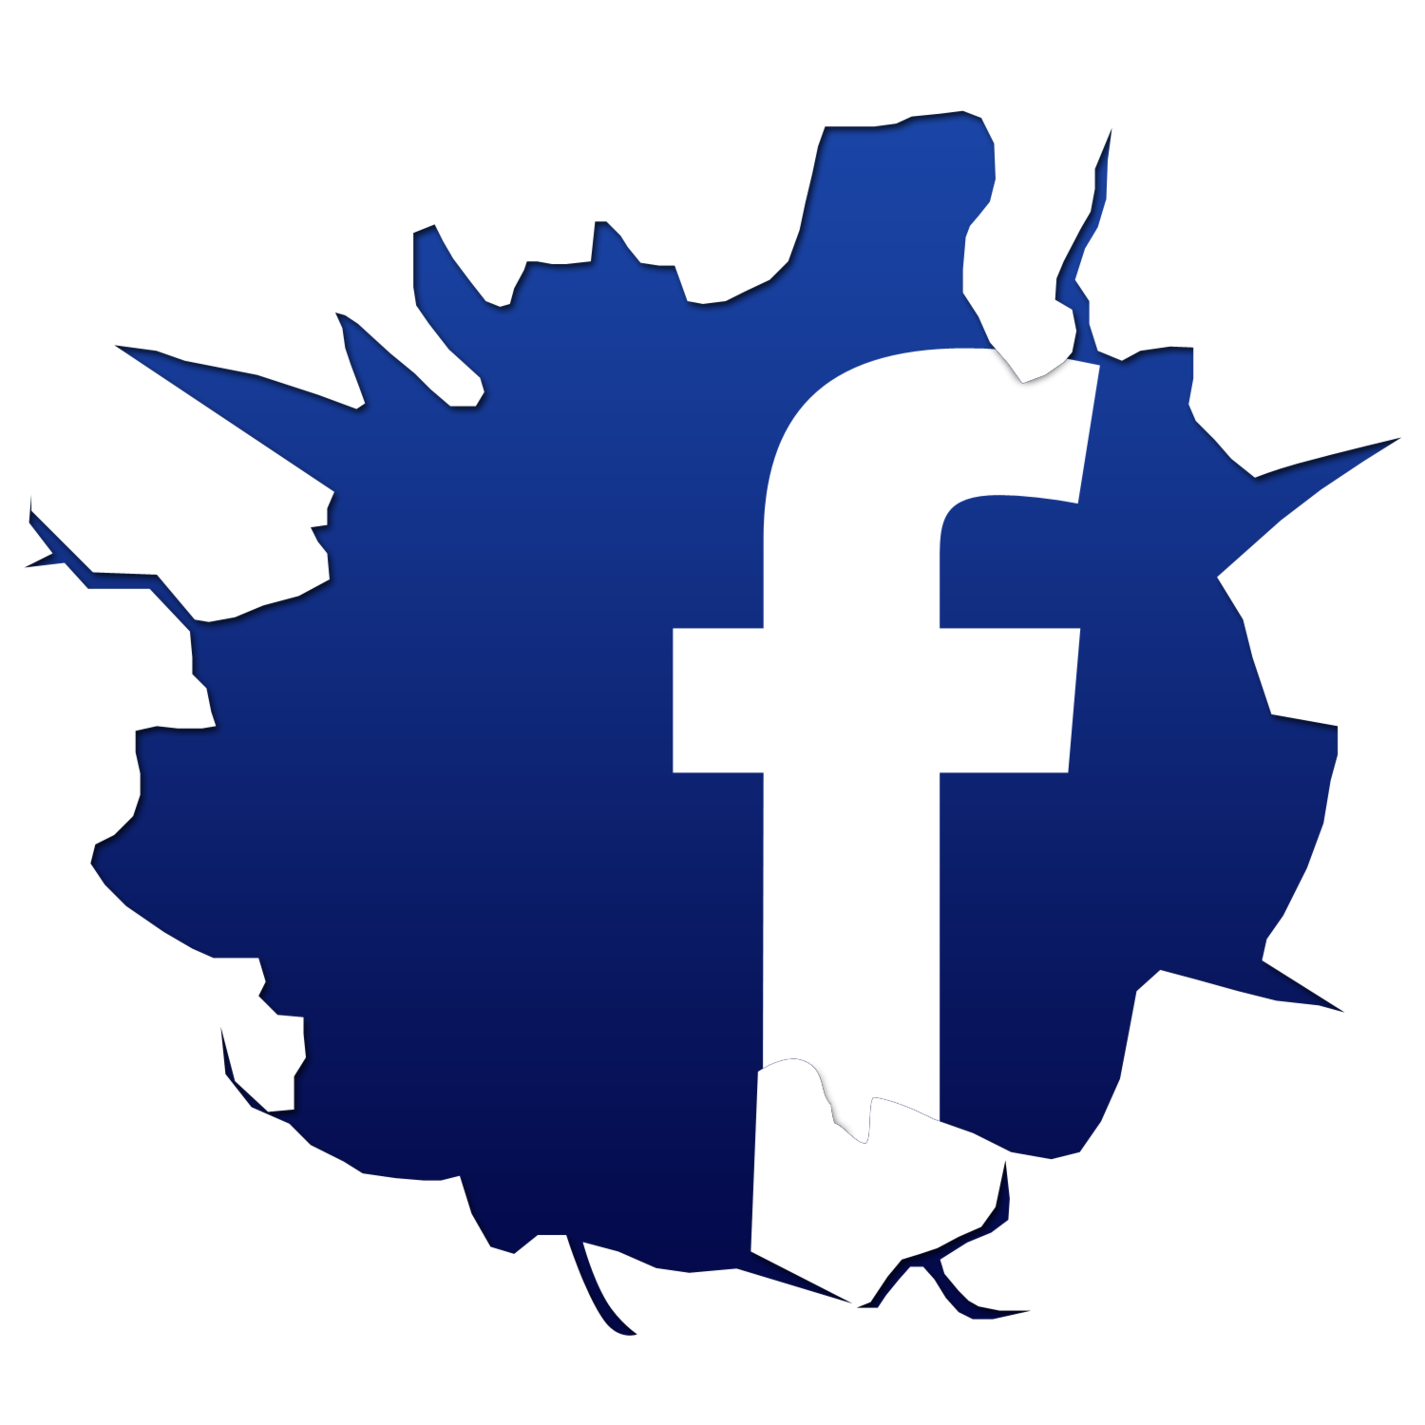 Facebook png clipart jpg free stock Use Clipart On Facebook jpg free stock